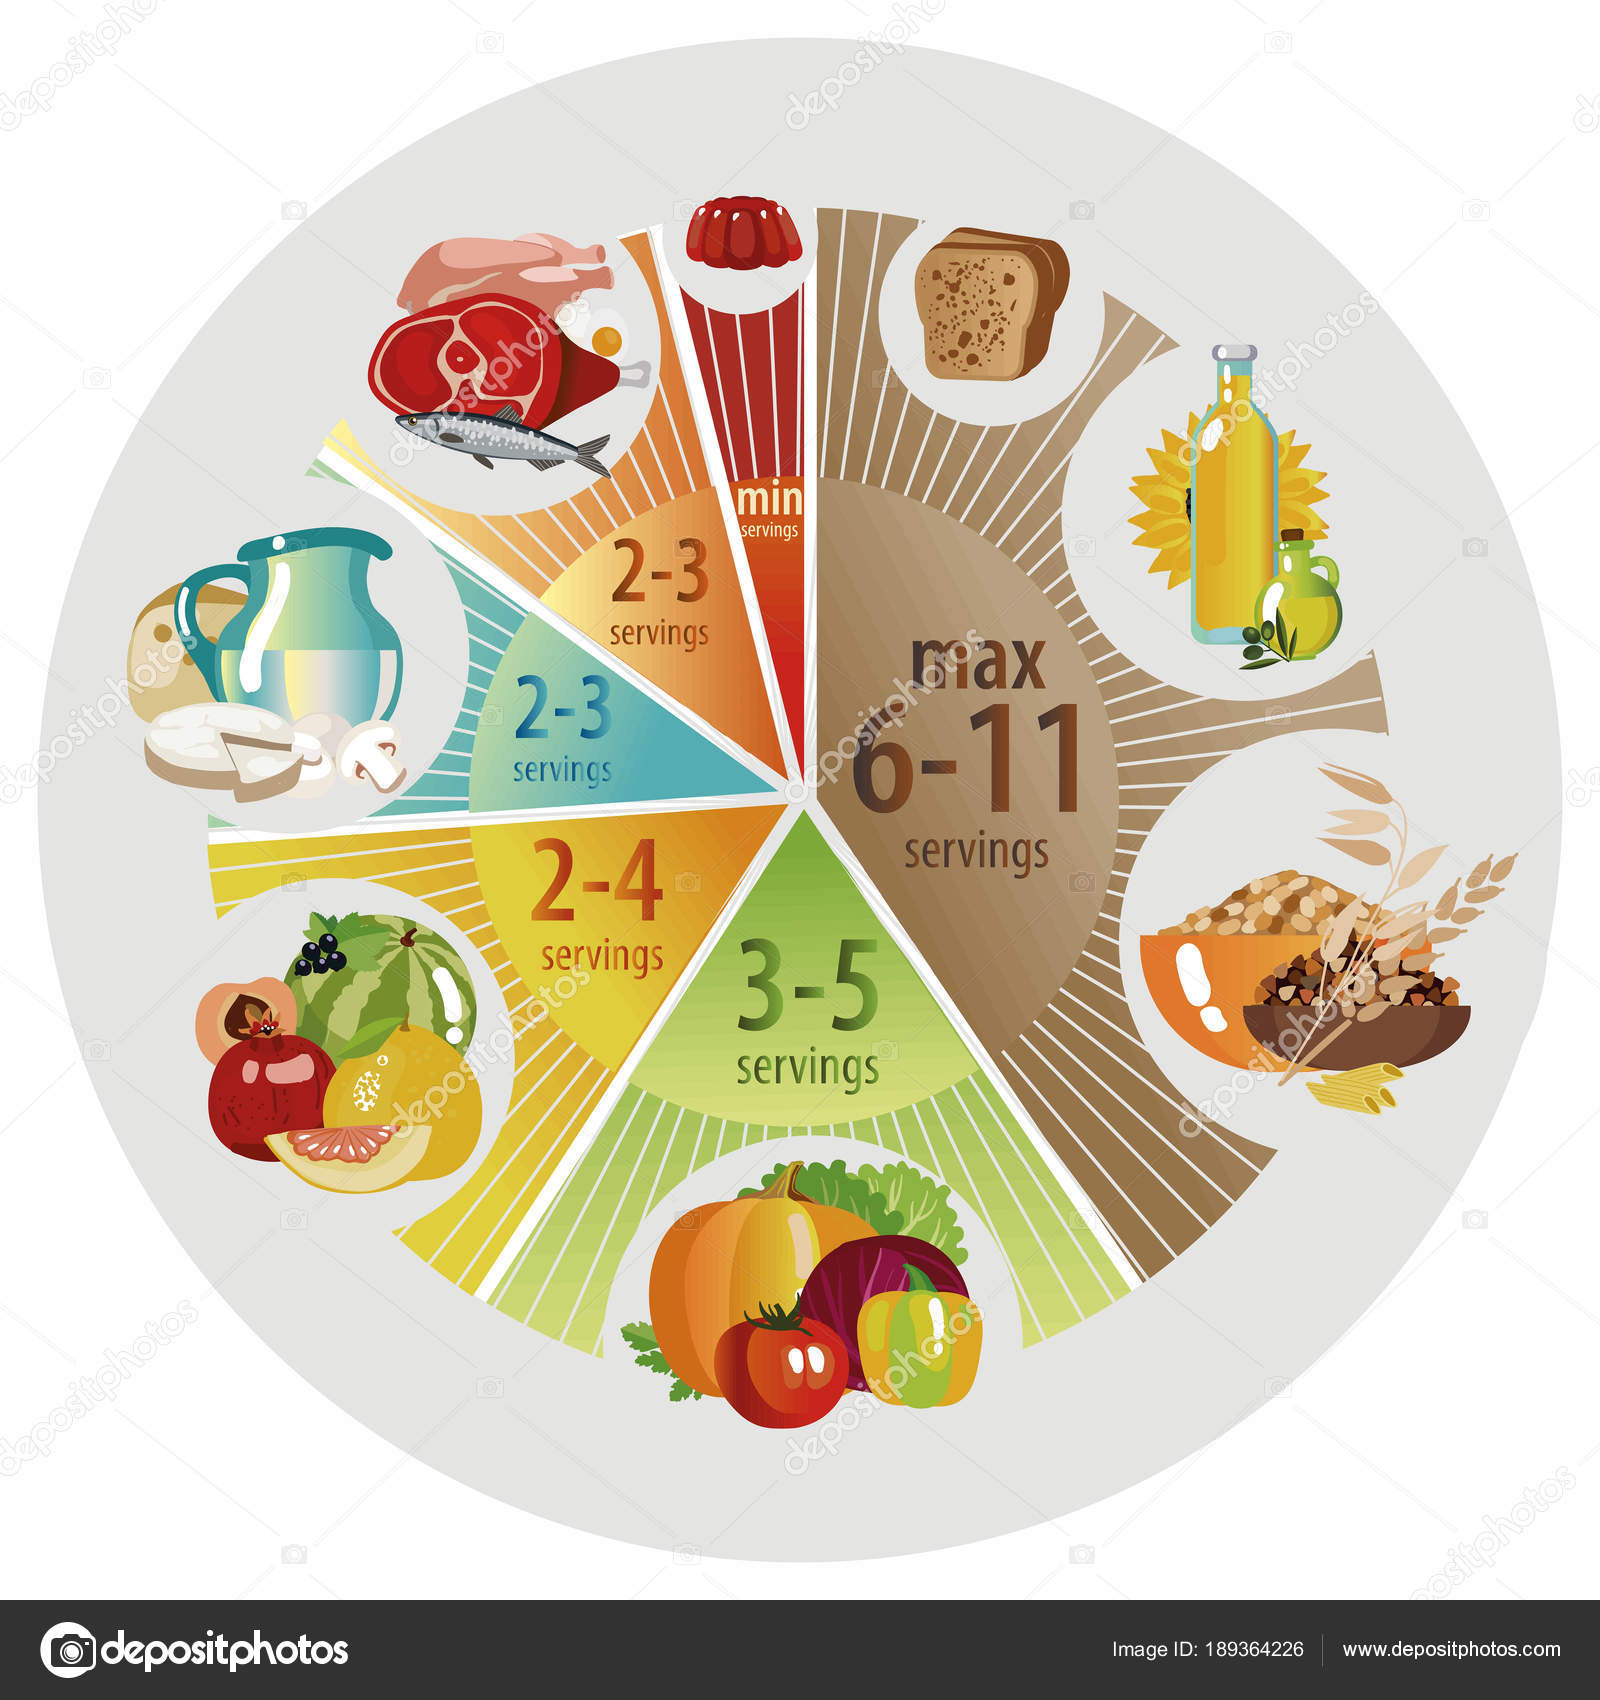 Food pyramid of pie chart stock vector alfaolga 189364226 food pyramid in the form of a pie chart recommendation for a healthy diet norms of products for the daily diet vector by alfaolga nvjuhfo Choice Image